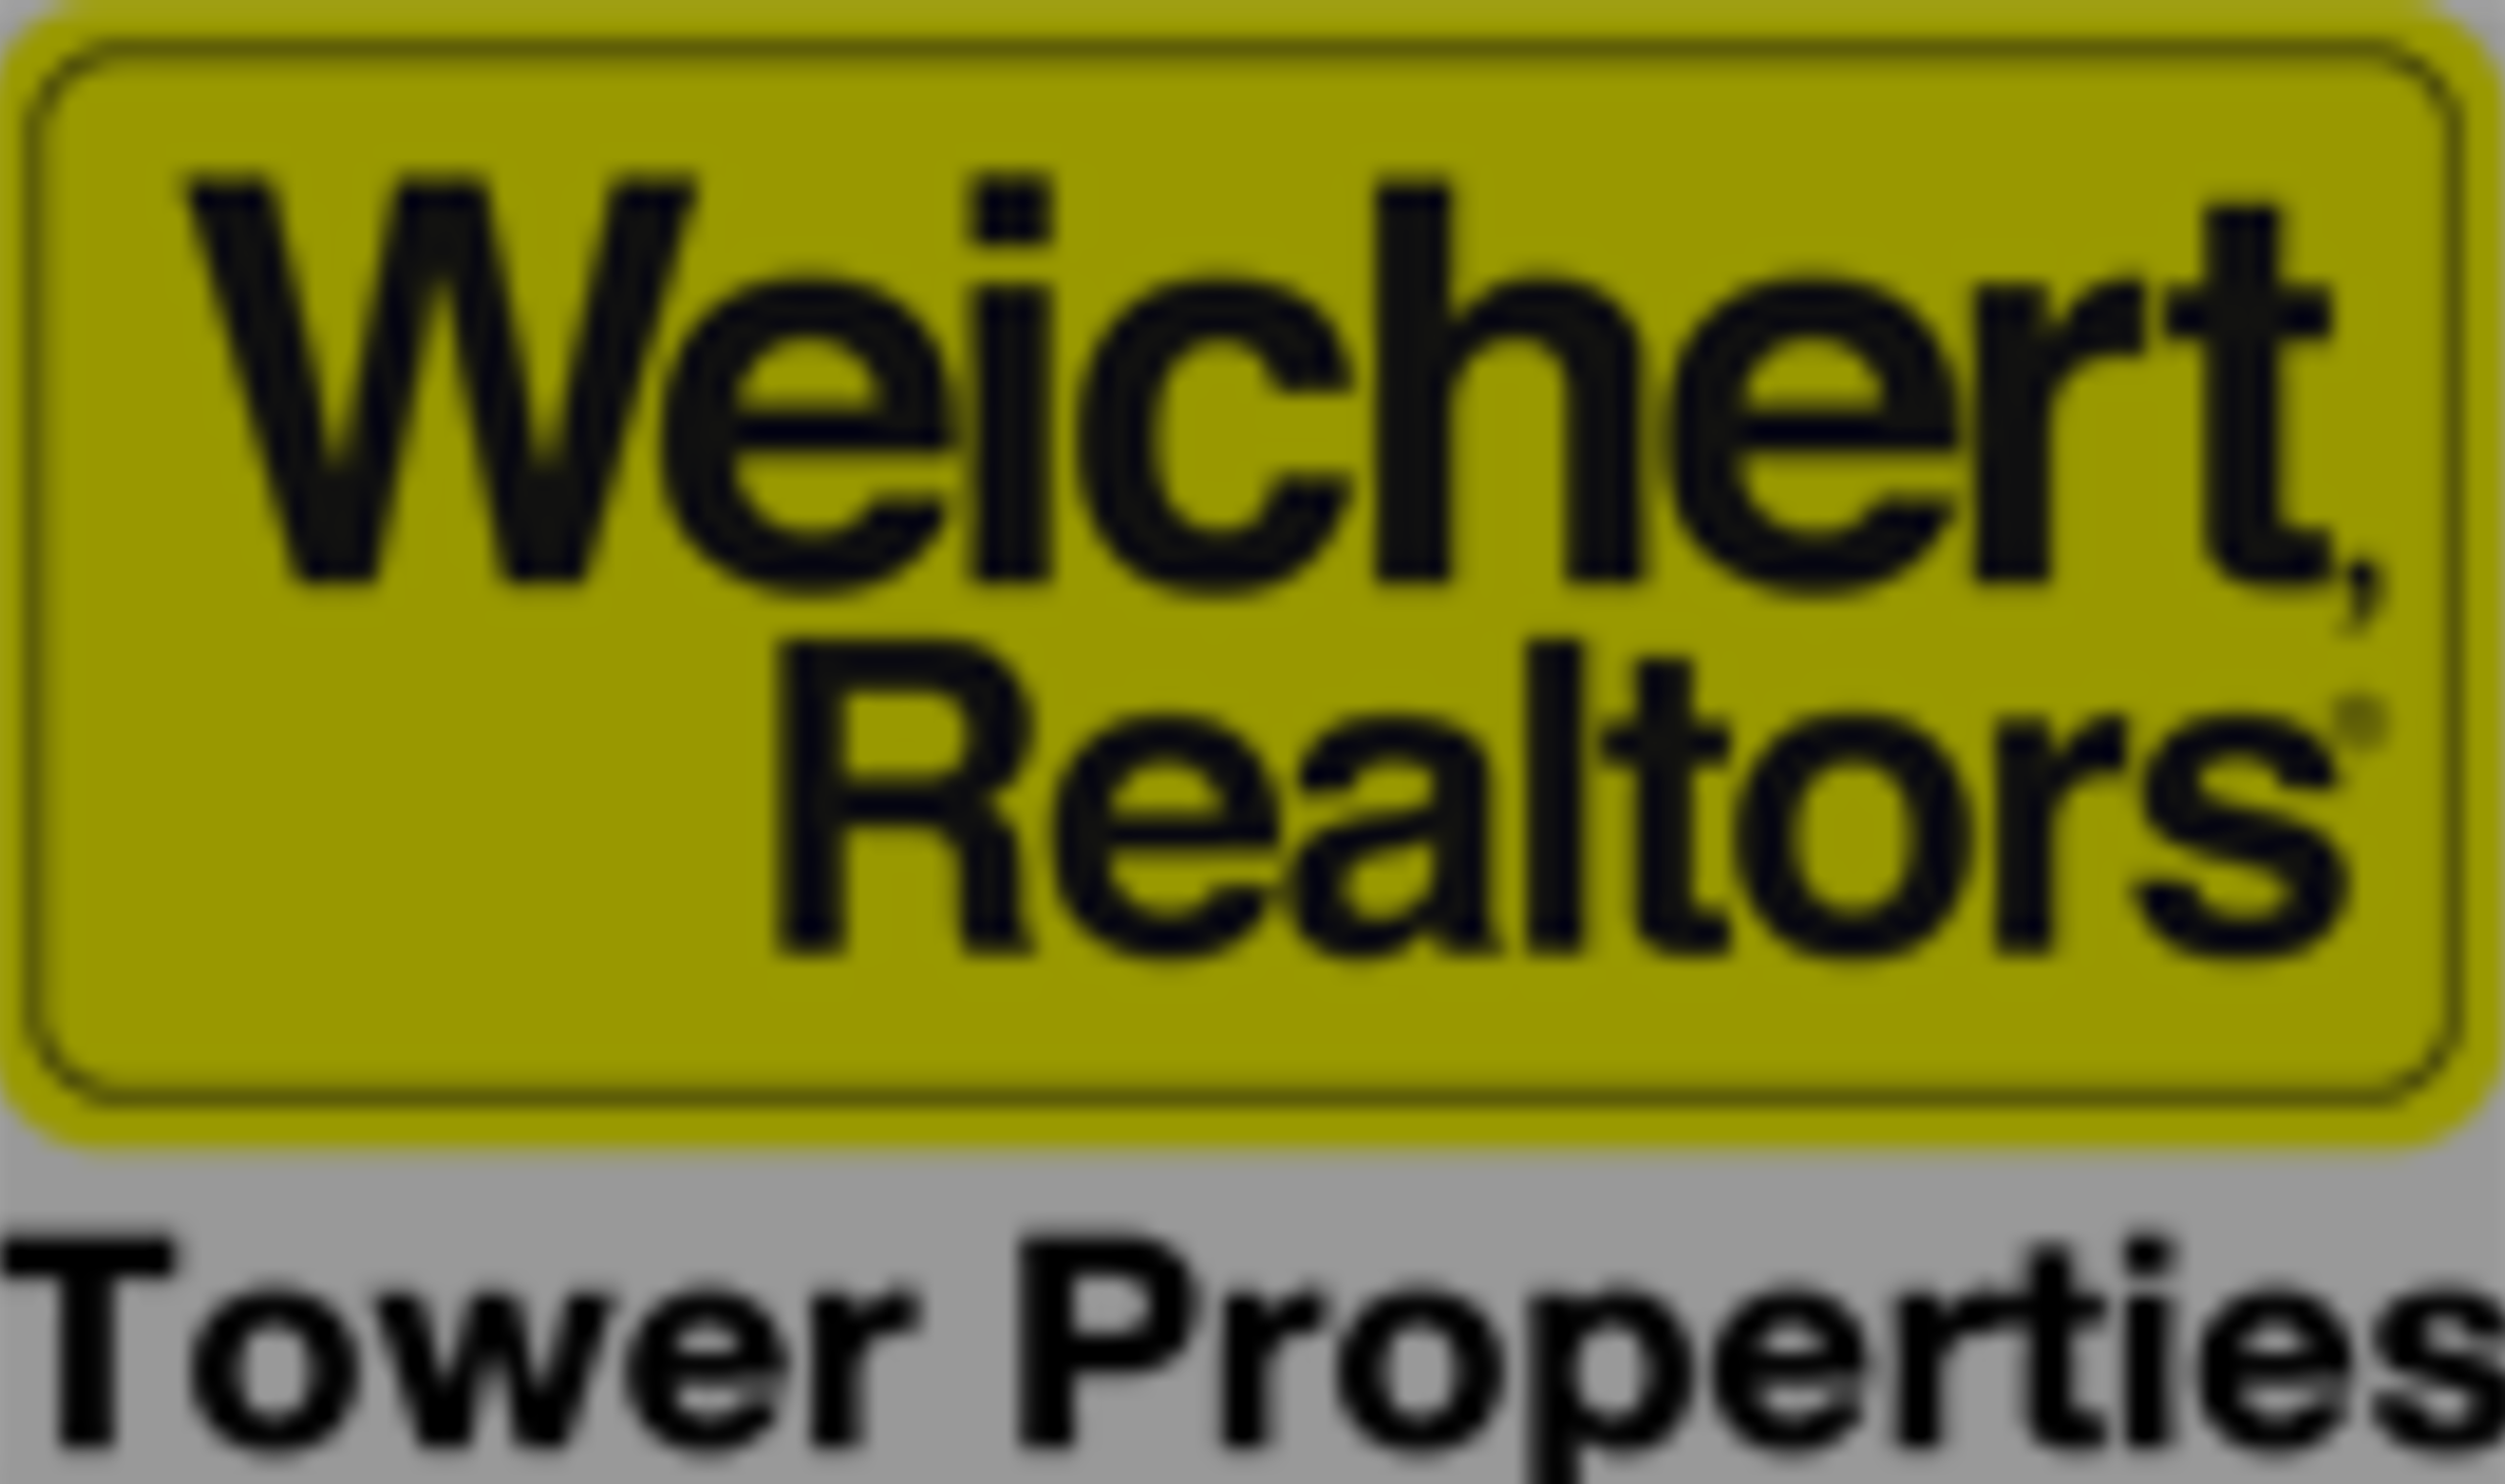 Weichert Realtors Brainerd Bring to You..Here are a few insights into the key steps in the home buying process